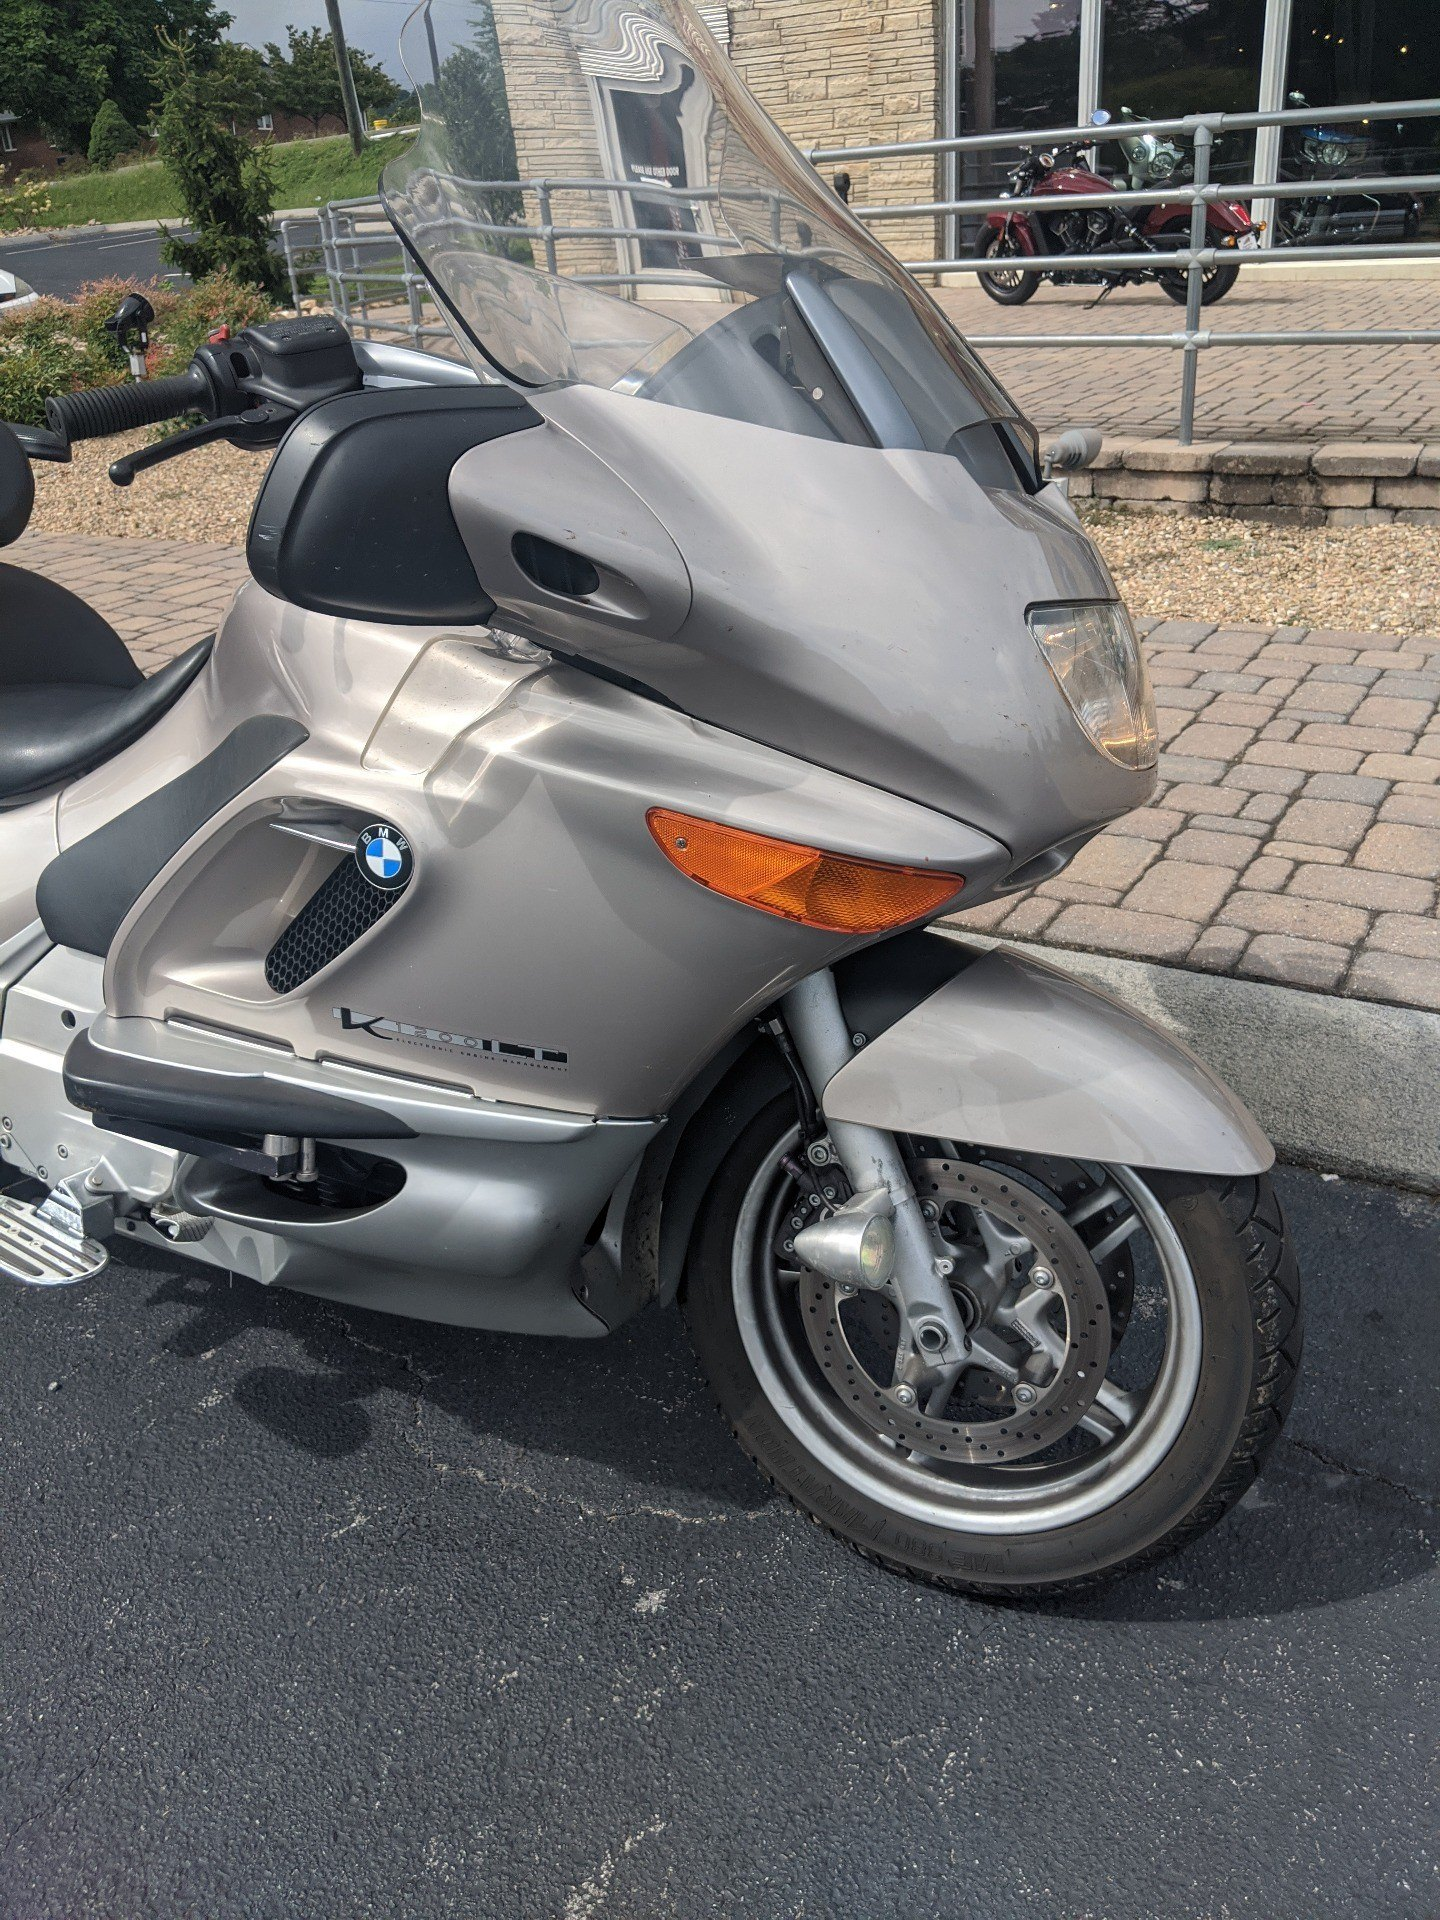 2001 BMW K 1200 LT-I in Bristol, Virginia - Photo 2